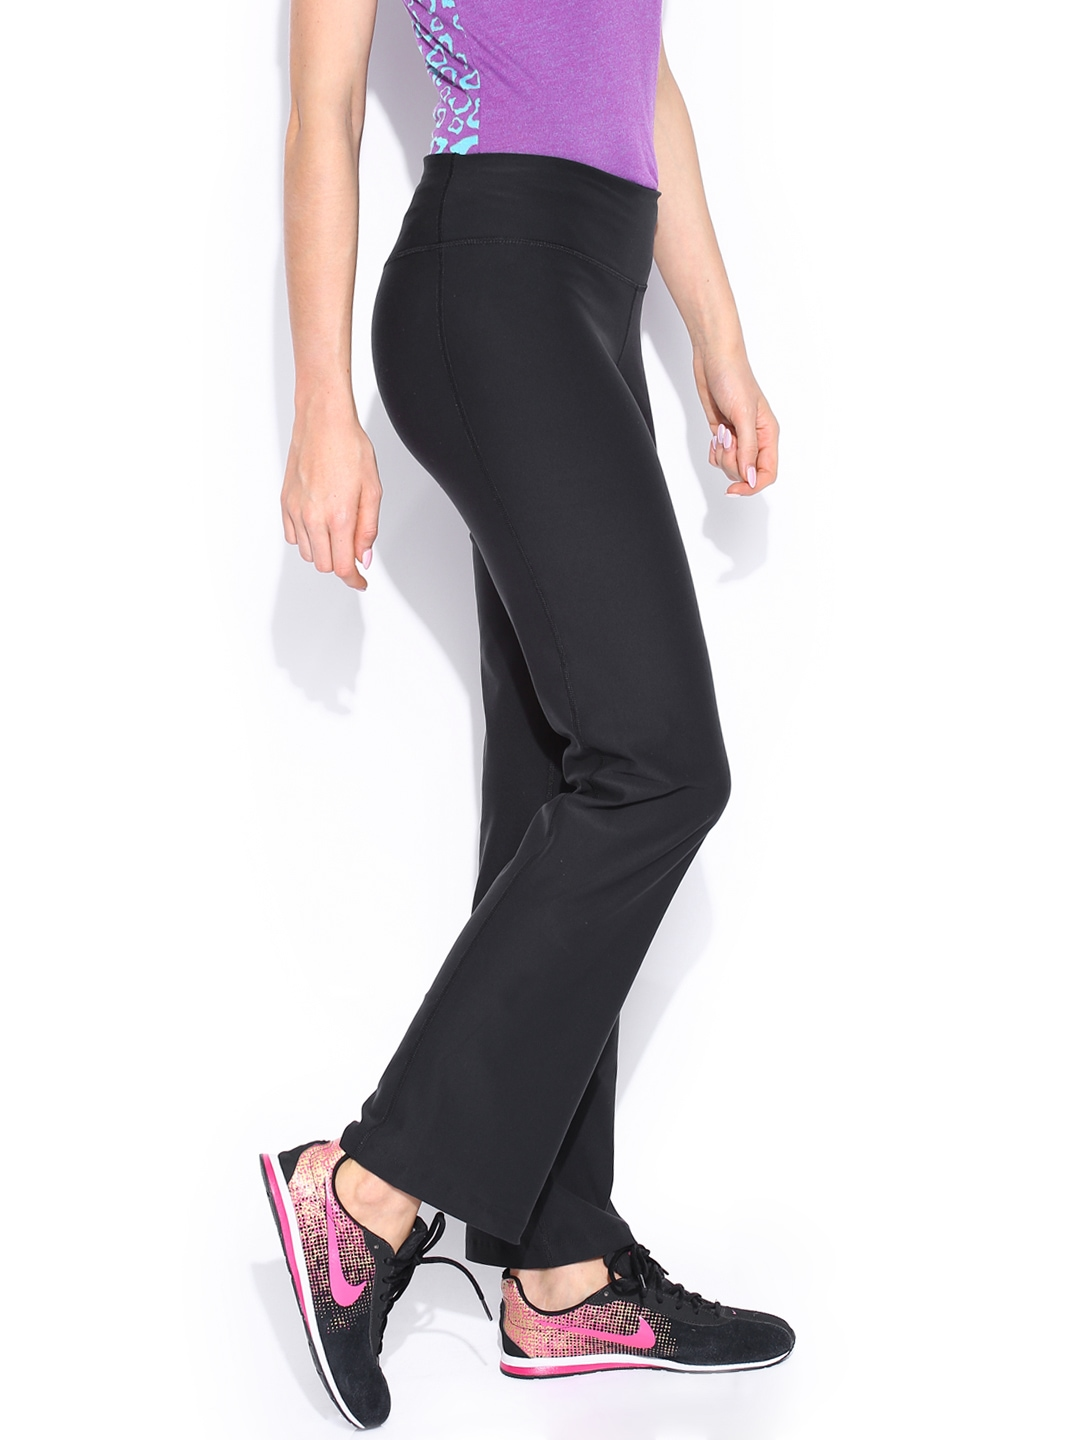 Brilliant Buy Nike Black Jersey NSW Track Pants  293  Apparel For Women